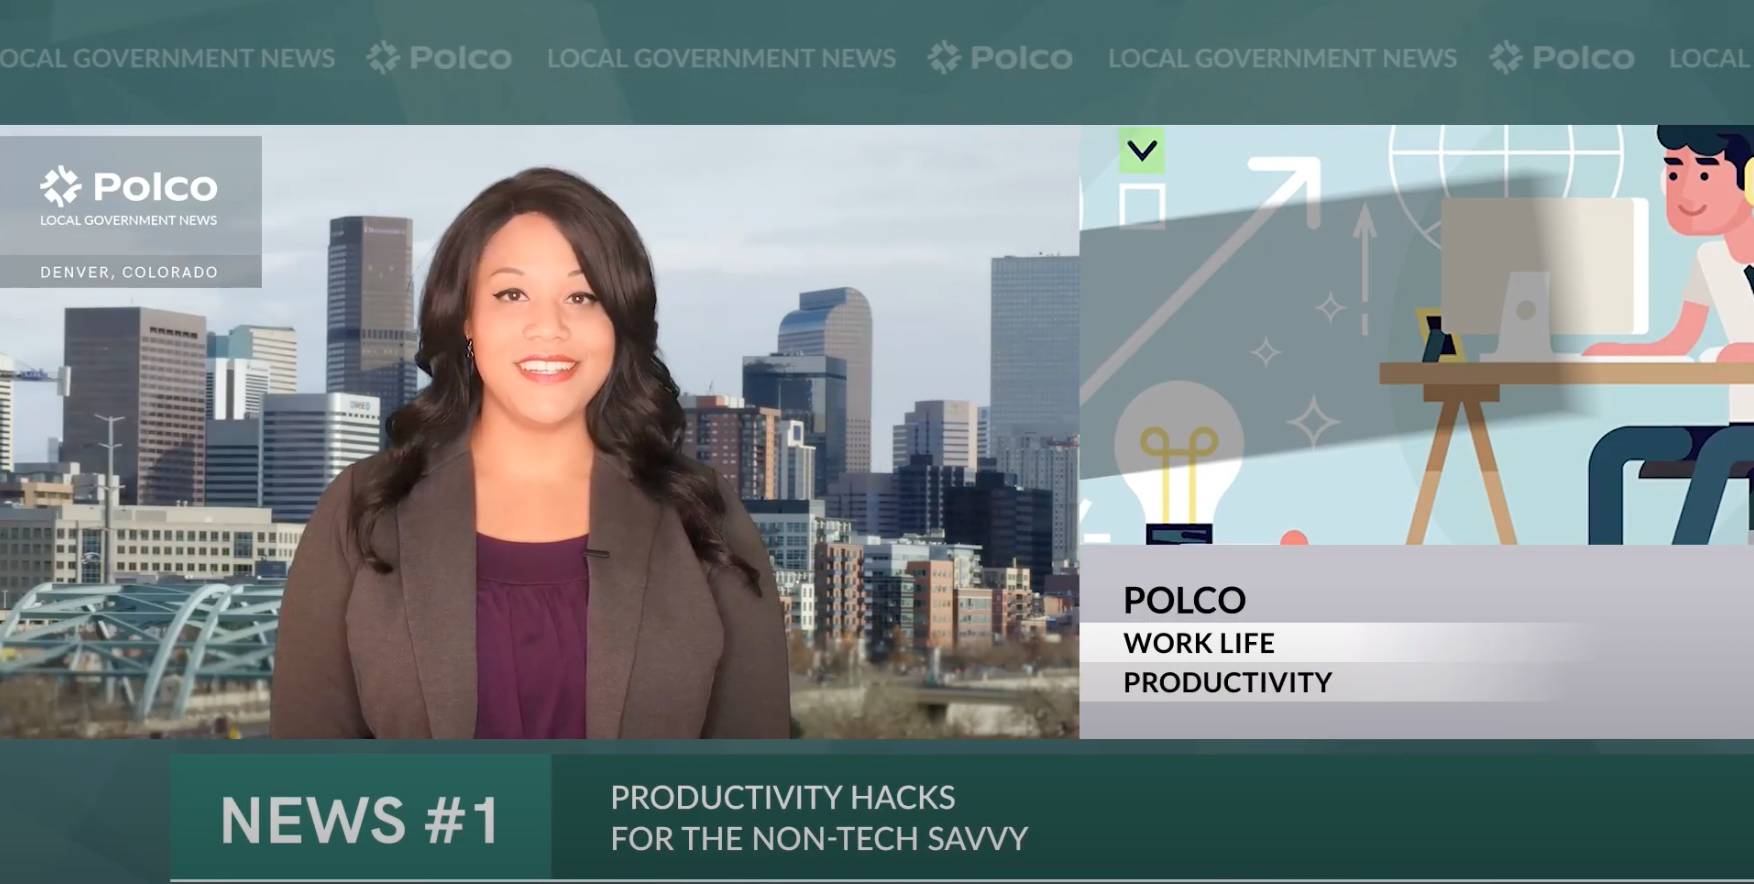 What are Productivity Hacks for the Non-Tech Savvy?